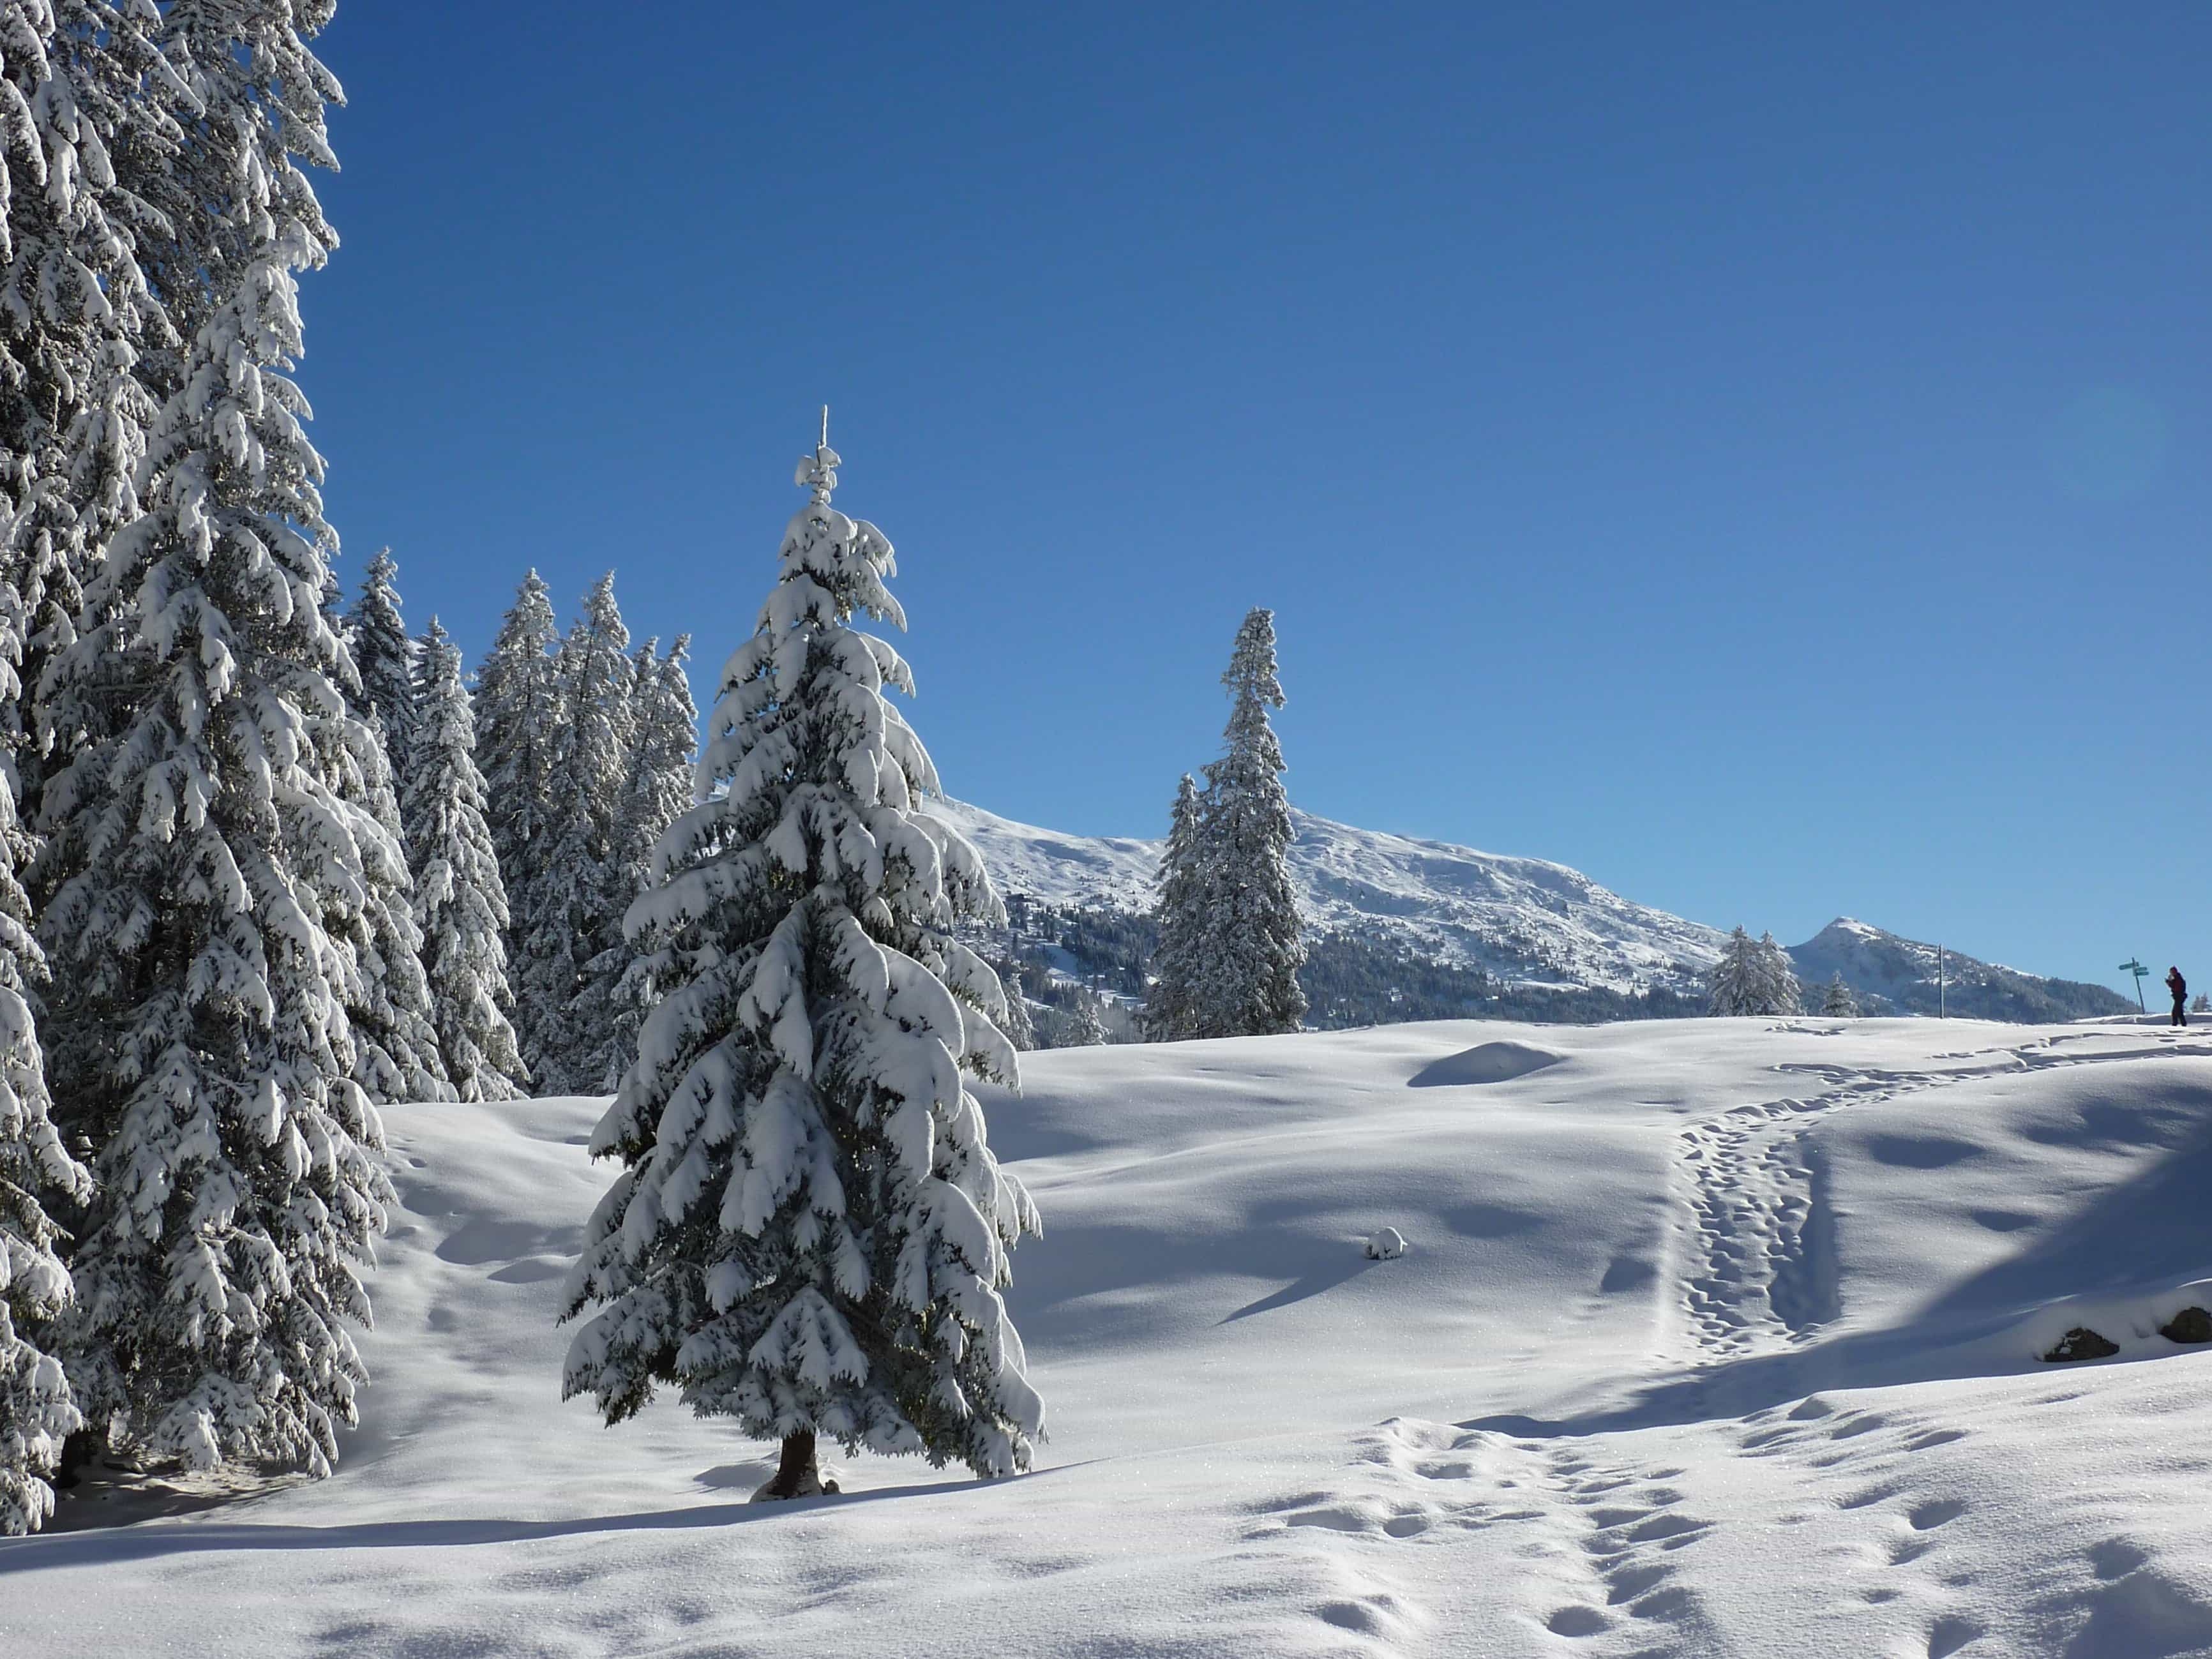 free picture  snow  winter  cold  hill  conifer  blue sky  frost  wood  ice  mountain  frozen